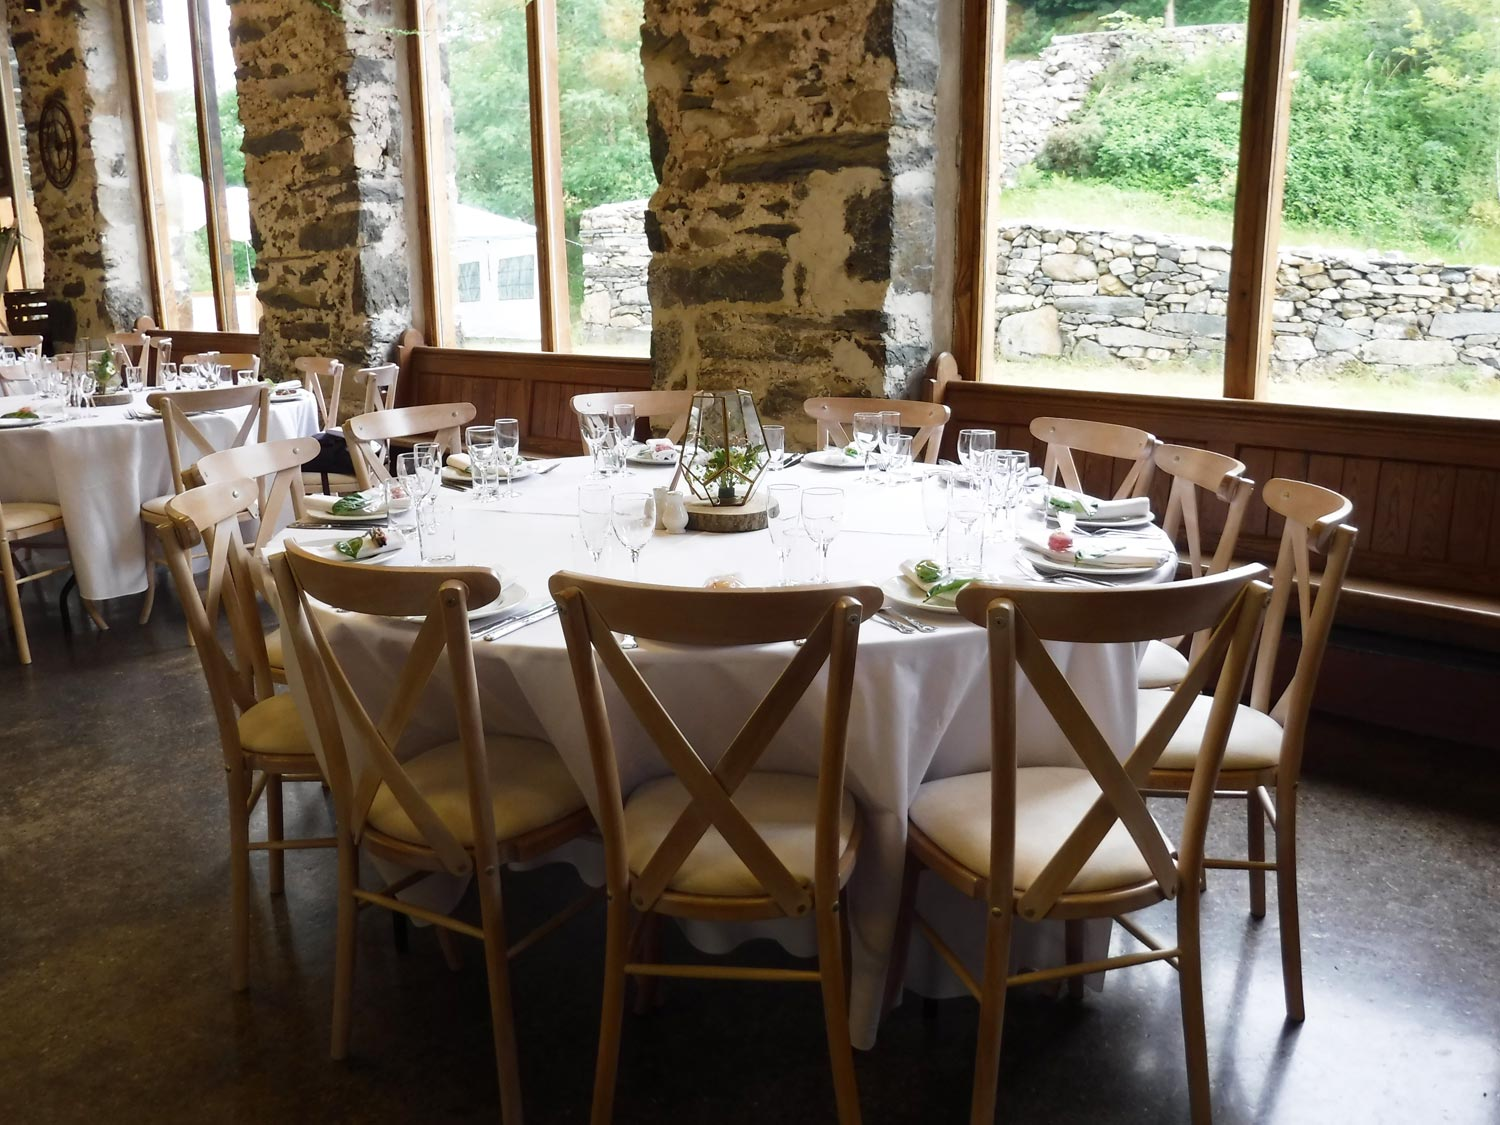 A Round Six Foot Table In The Function Barn With Our Wedding Chairs